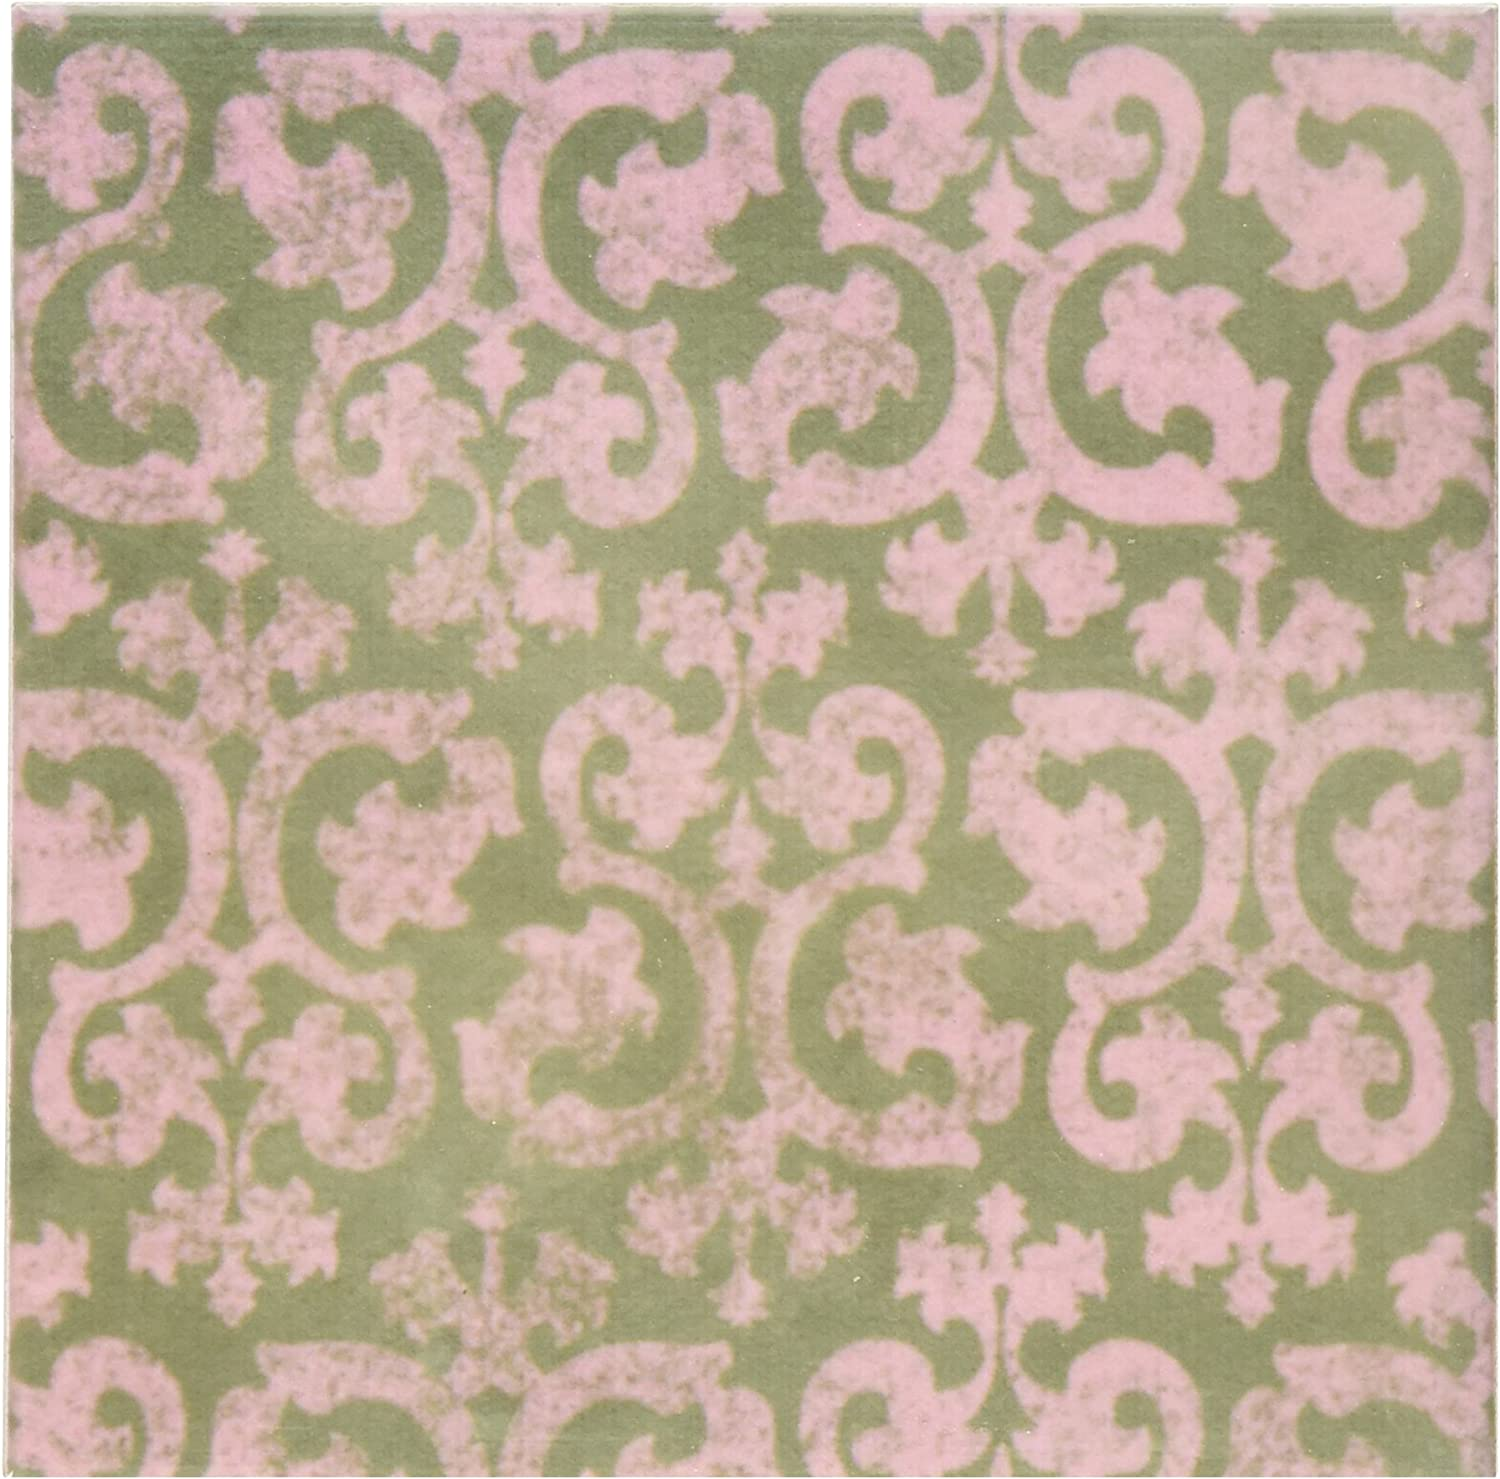 3drose Cst 151437 4 Grunge Pink And Grey Damask Dark Gray Faded Victorian Wallpaper Swirls Vintage Classic Ceramic Tile Coasters Set Of 8 Amazon Ca Home Kitchen